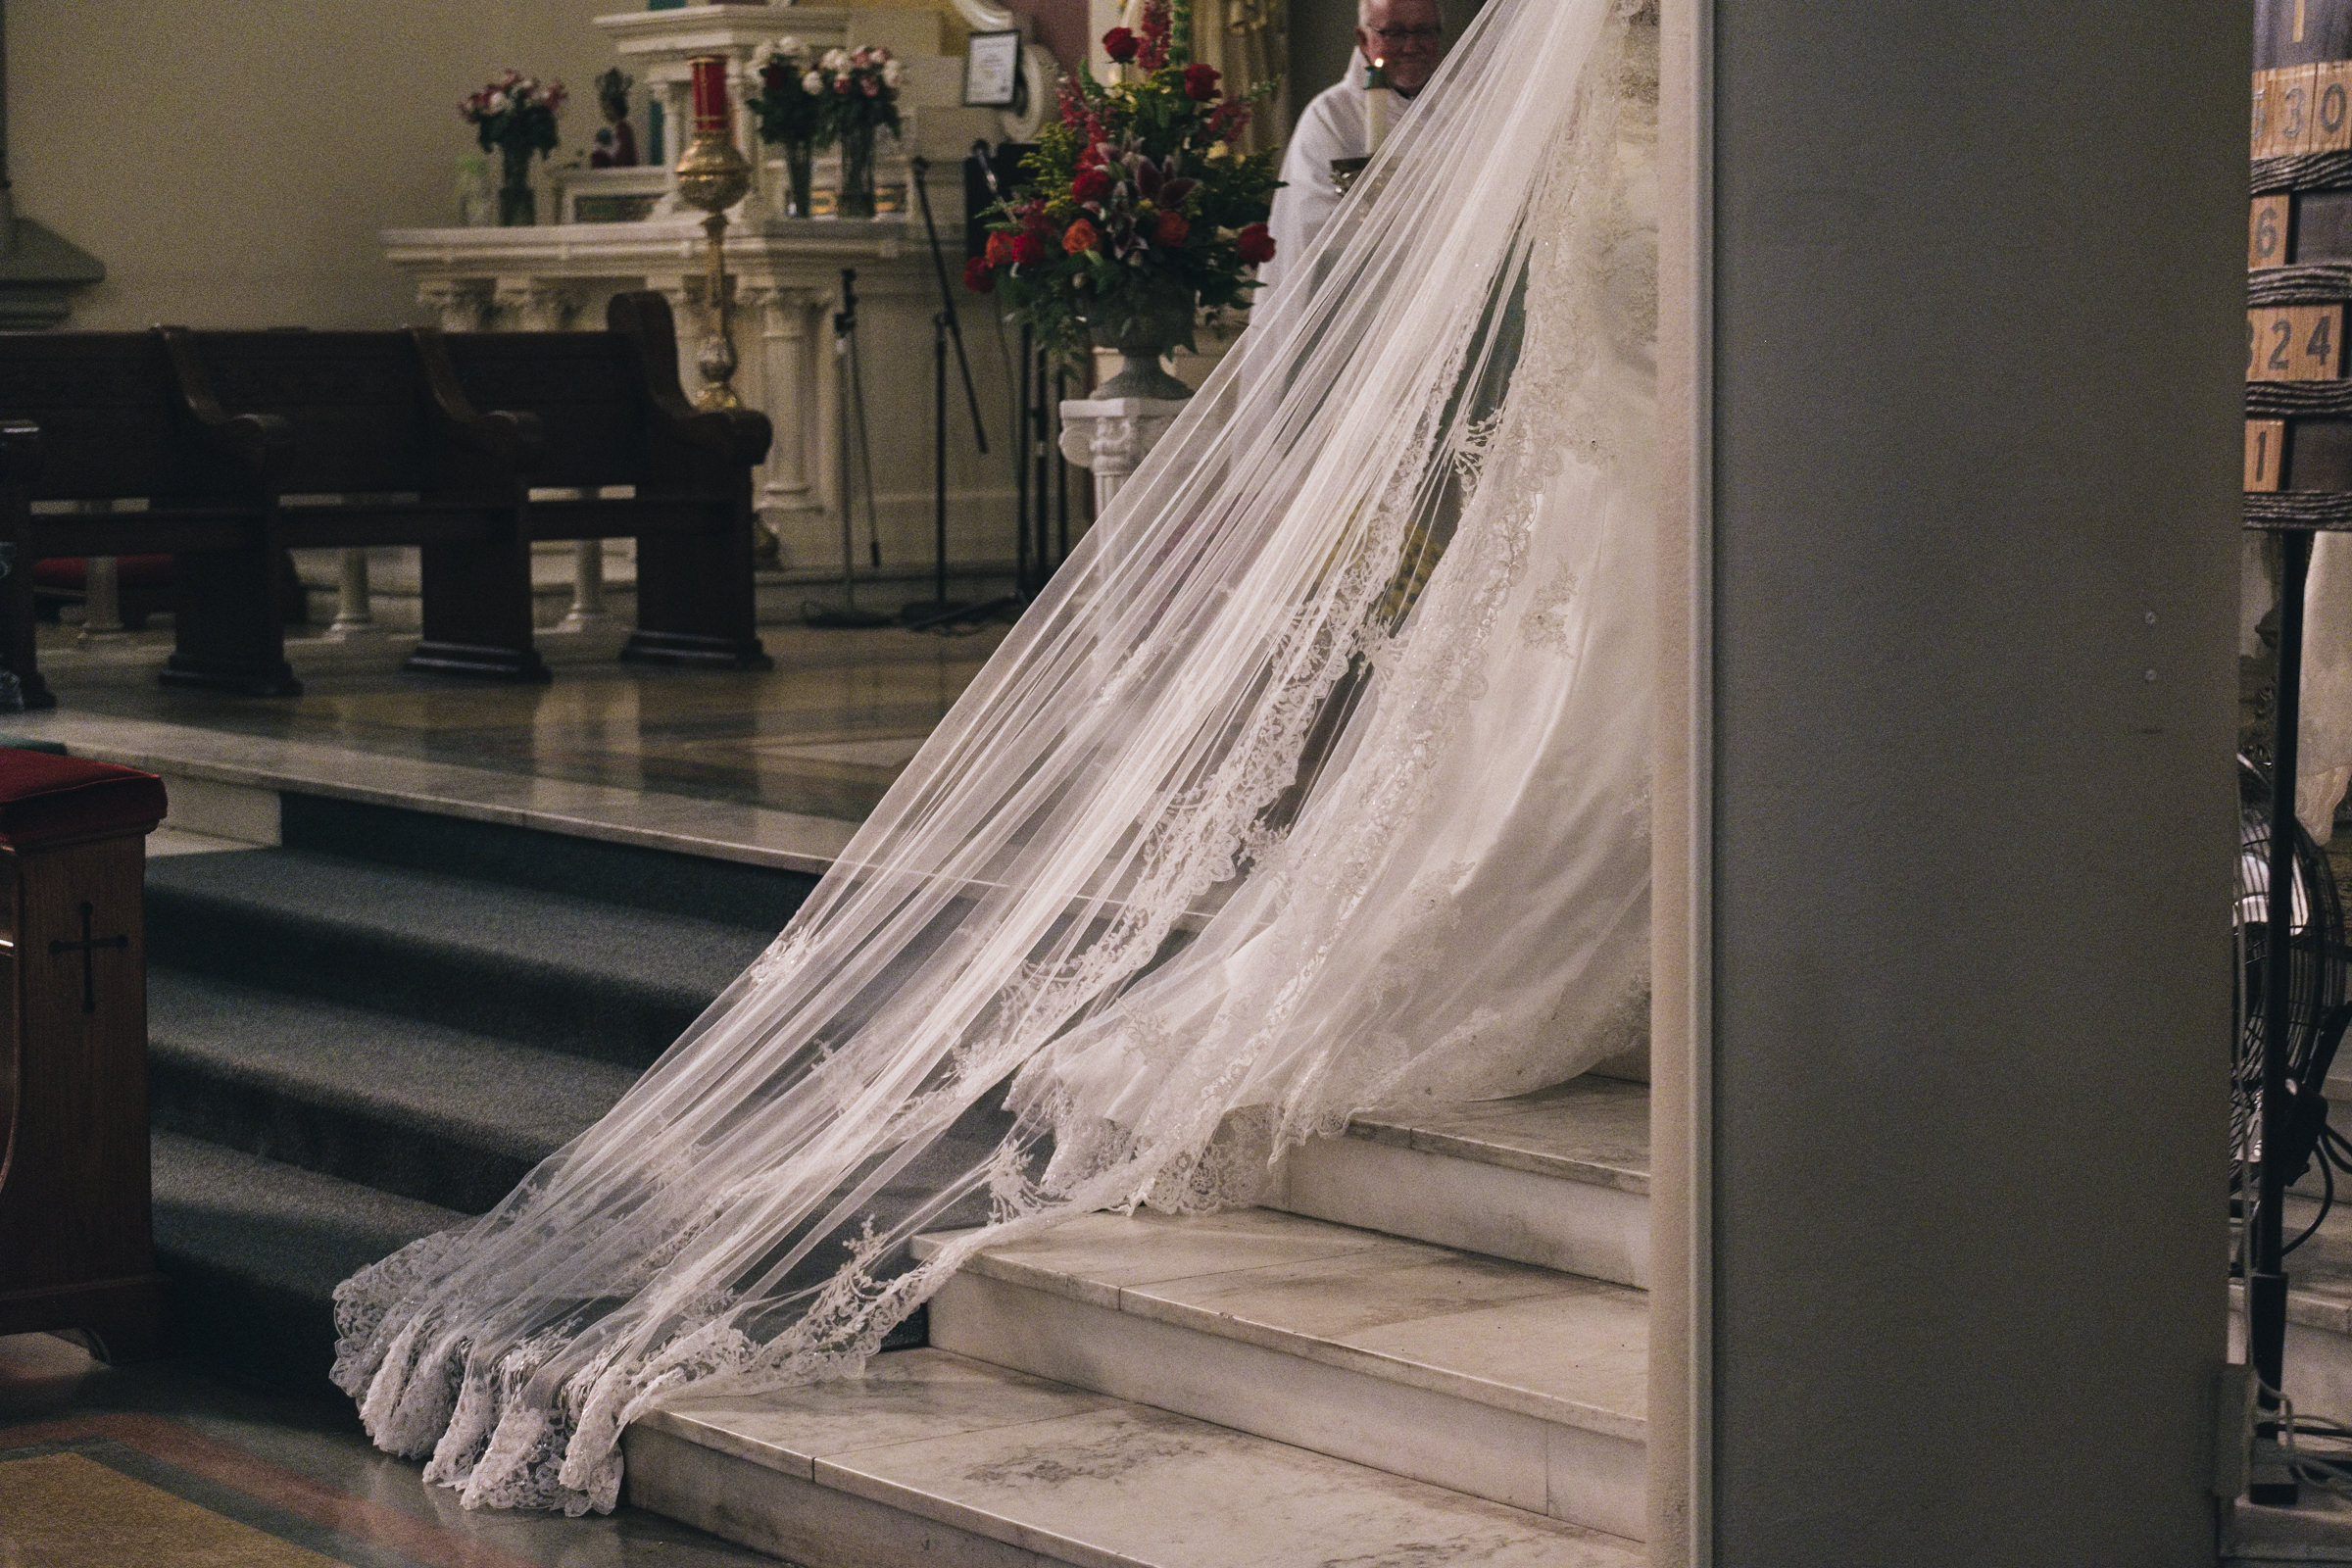 The bride's long wedding veil is lace and drags on the ground during her Catholic Irish Hispanic wedding ceremony,